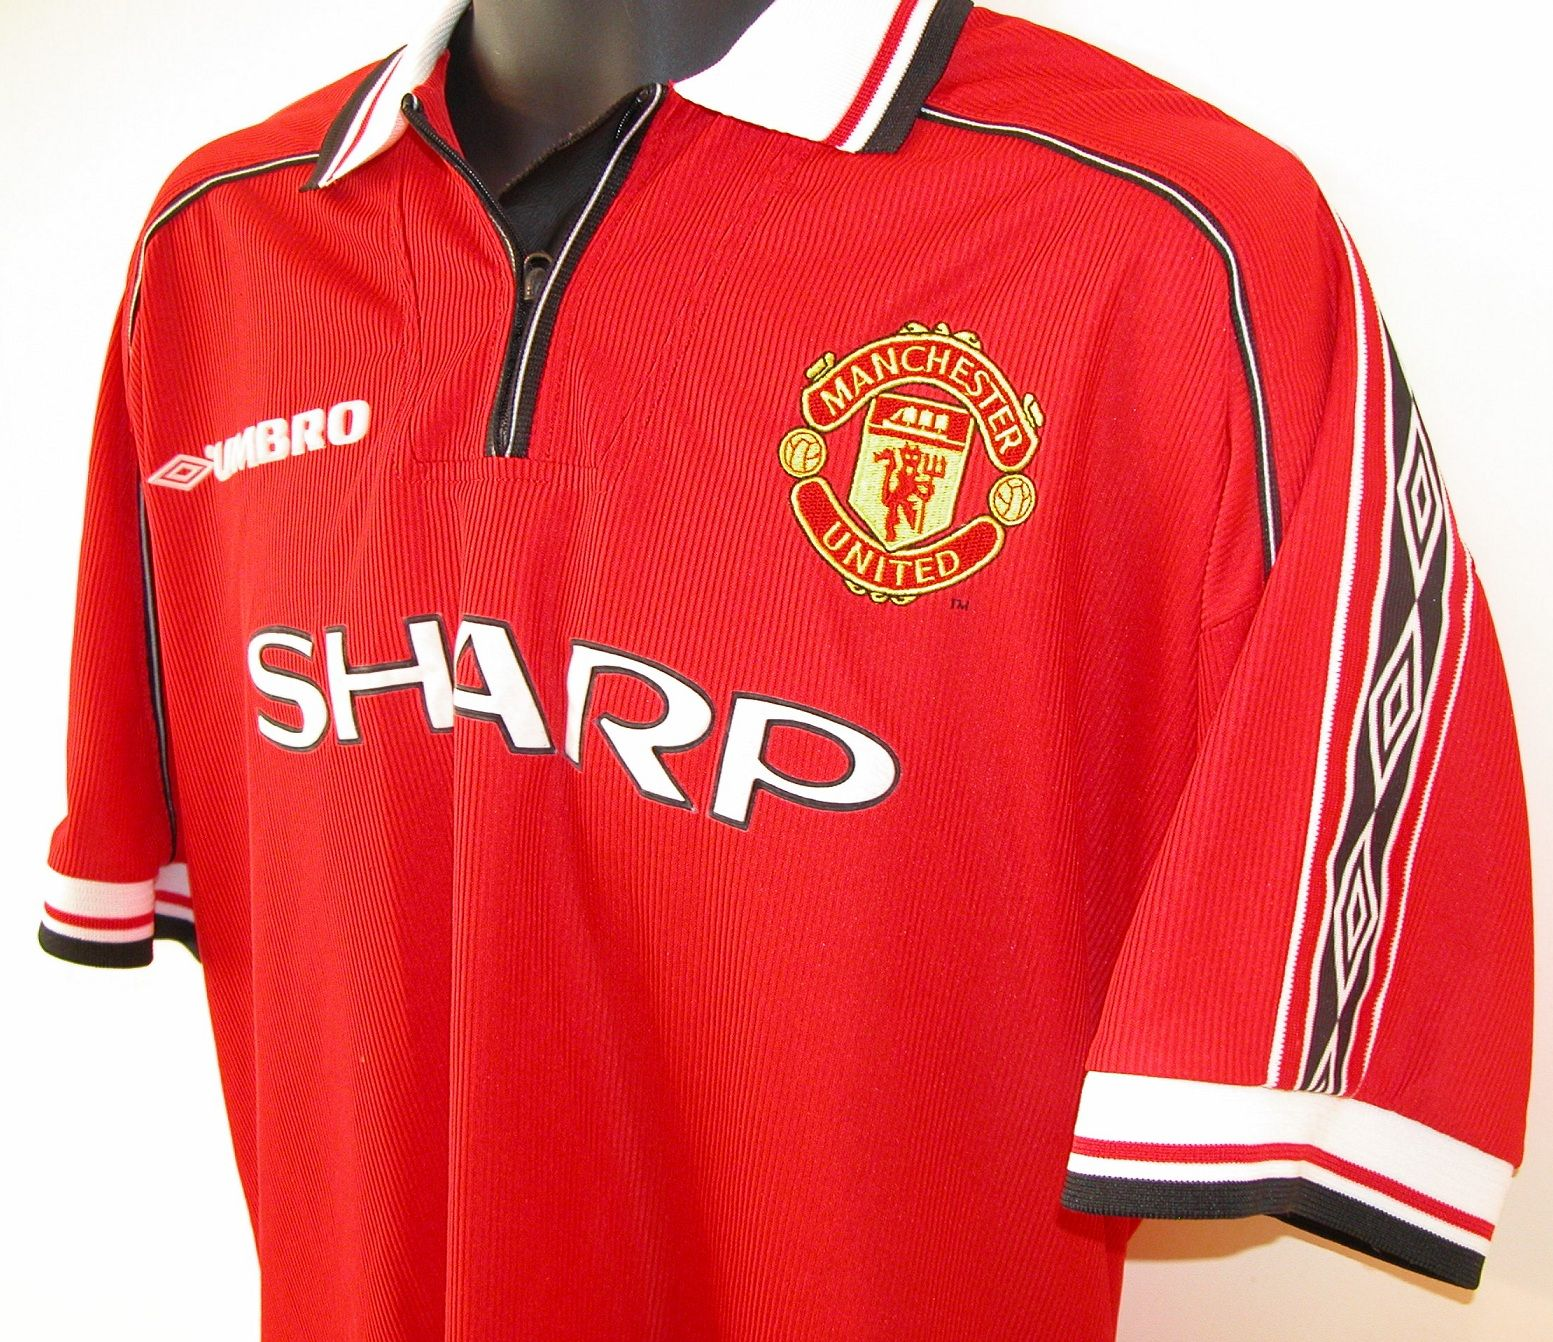 942e497804a 1999 Manchester United  Treble  shirt by Umbro